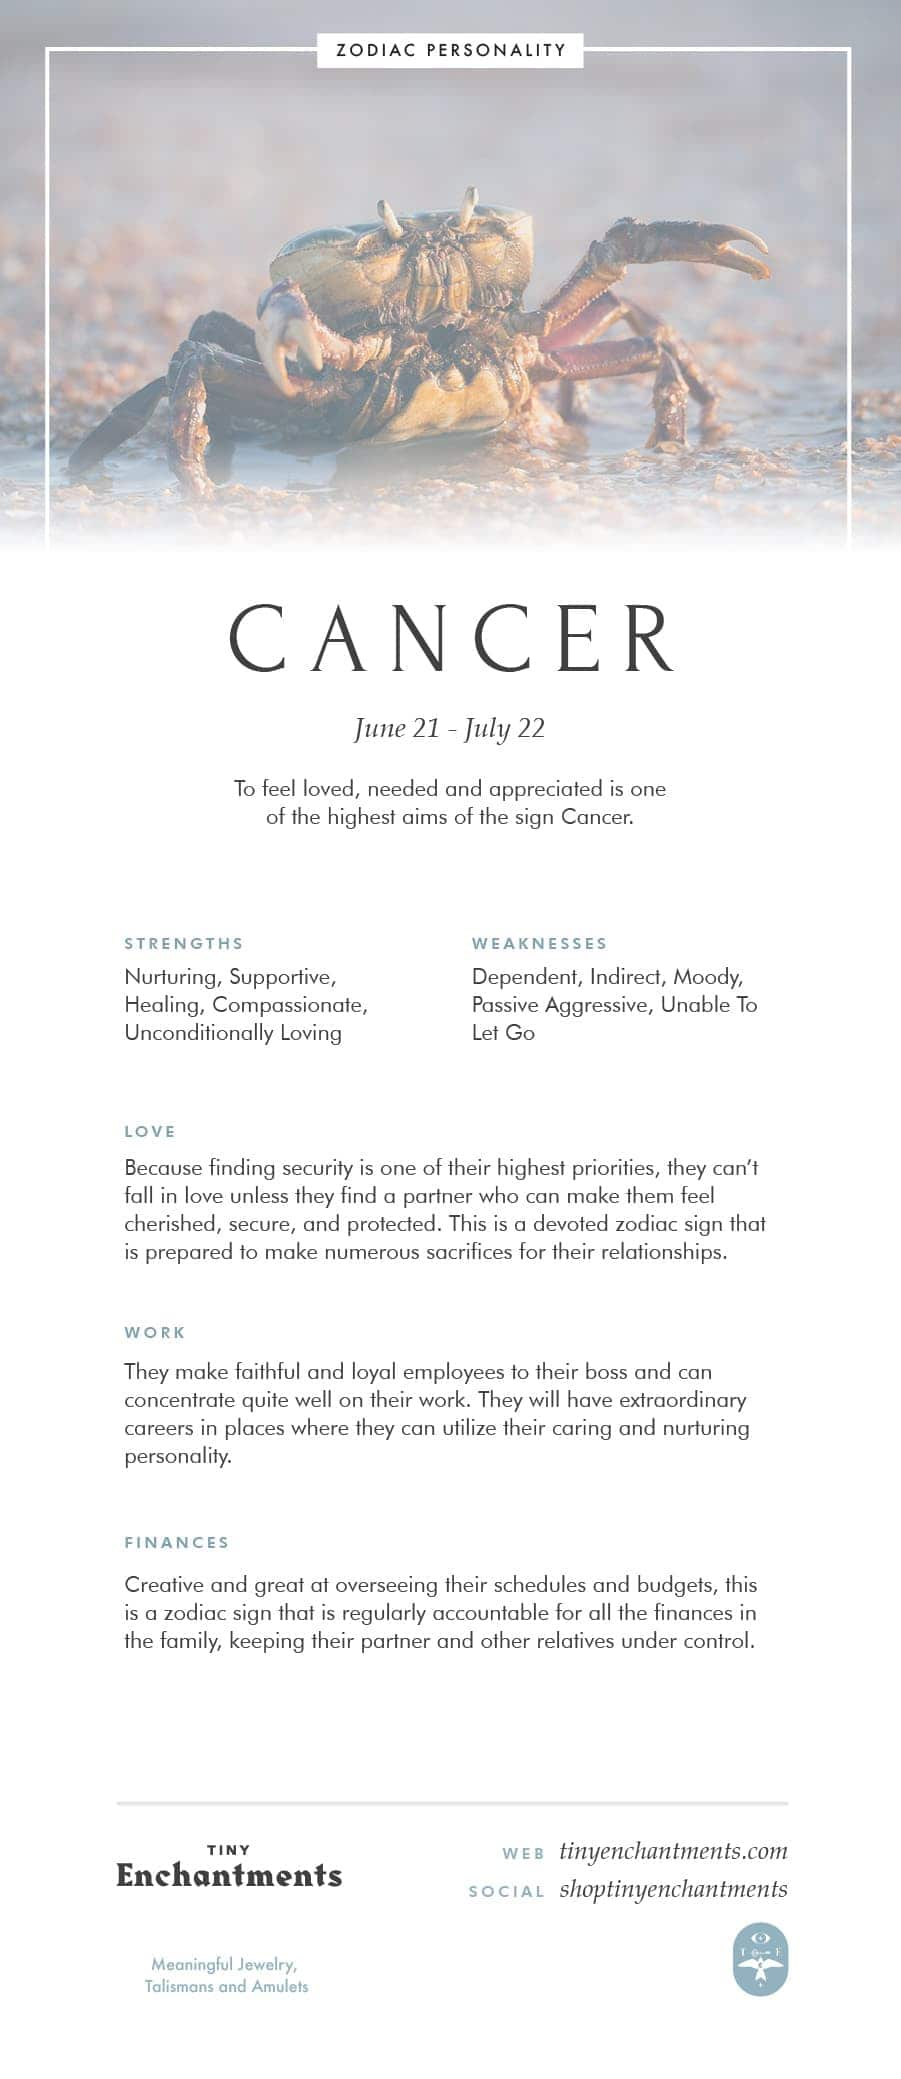 Cancer Zodiac Sign Correspondences - Cancer Personality, Cancer Symbol, Cancer Mythology and Cancer Meaning